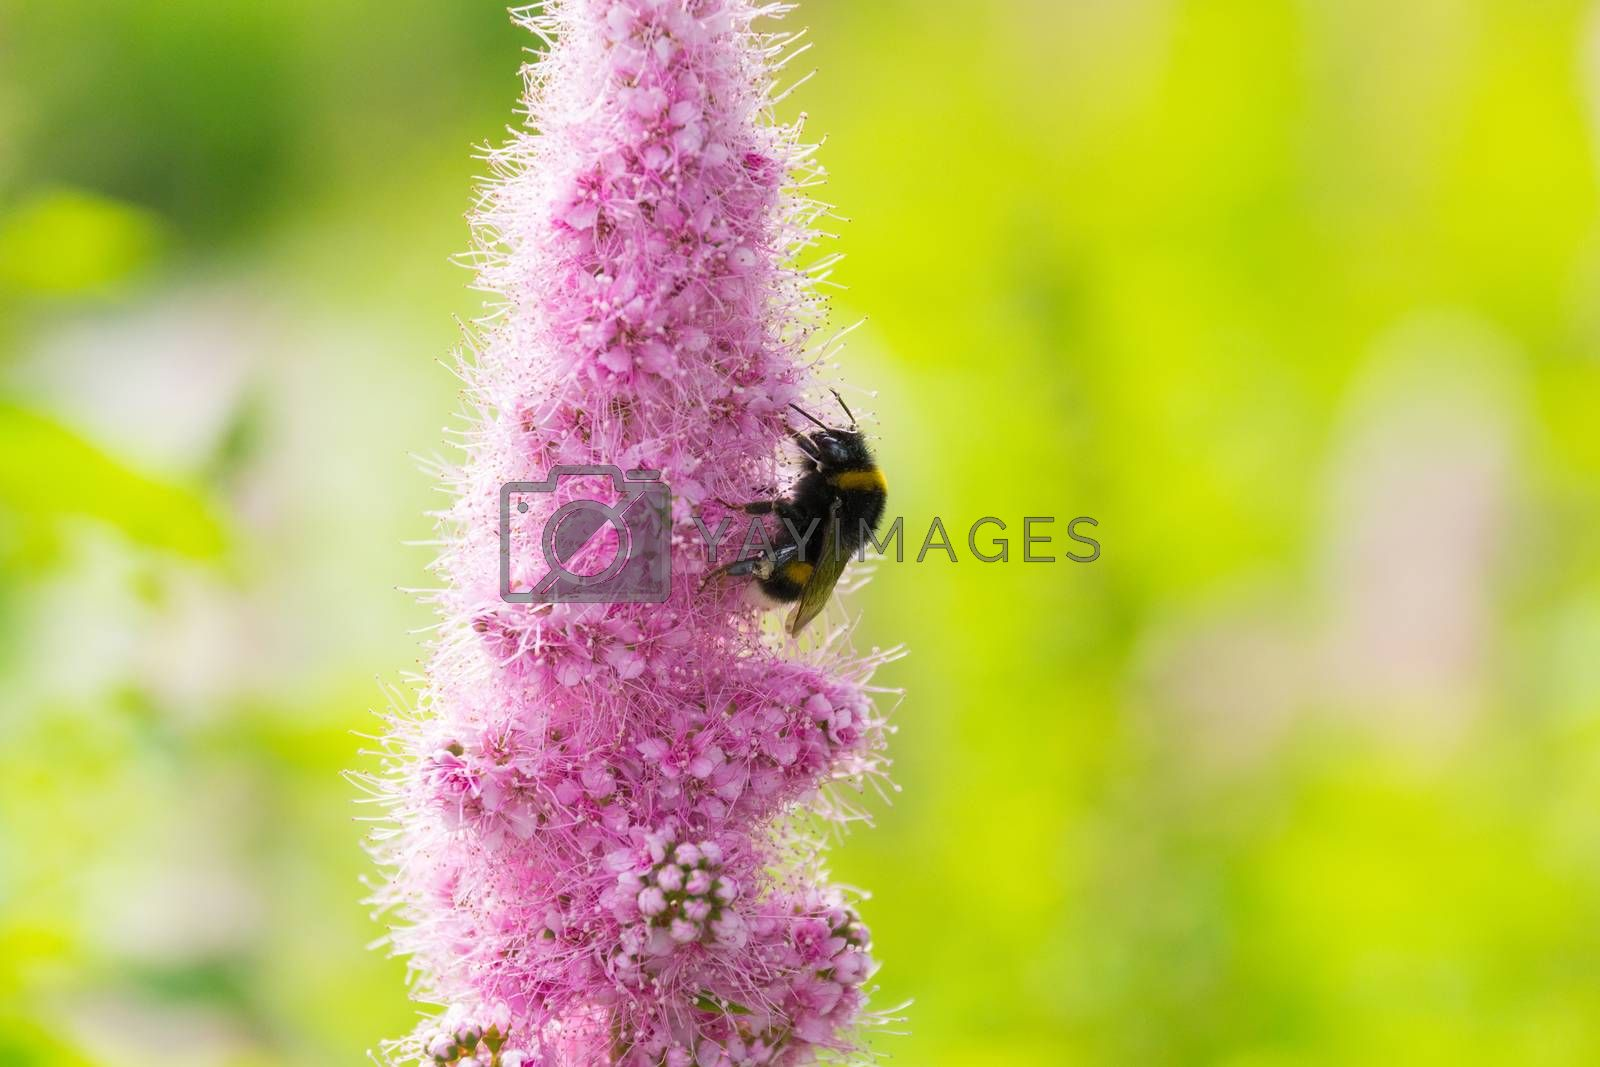 The photo shows a bumble bee on a flower